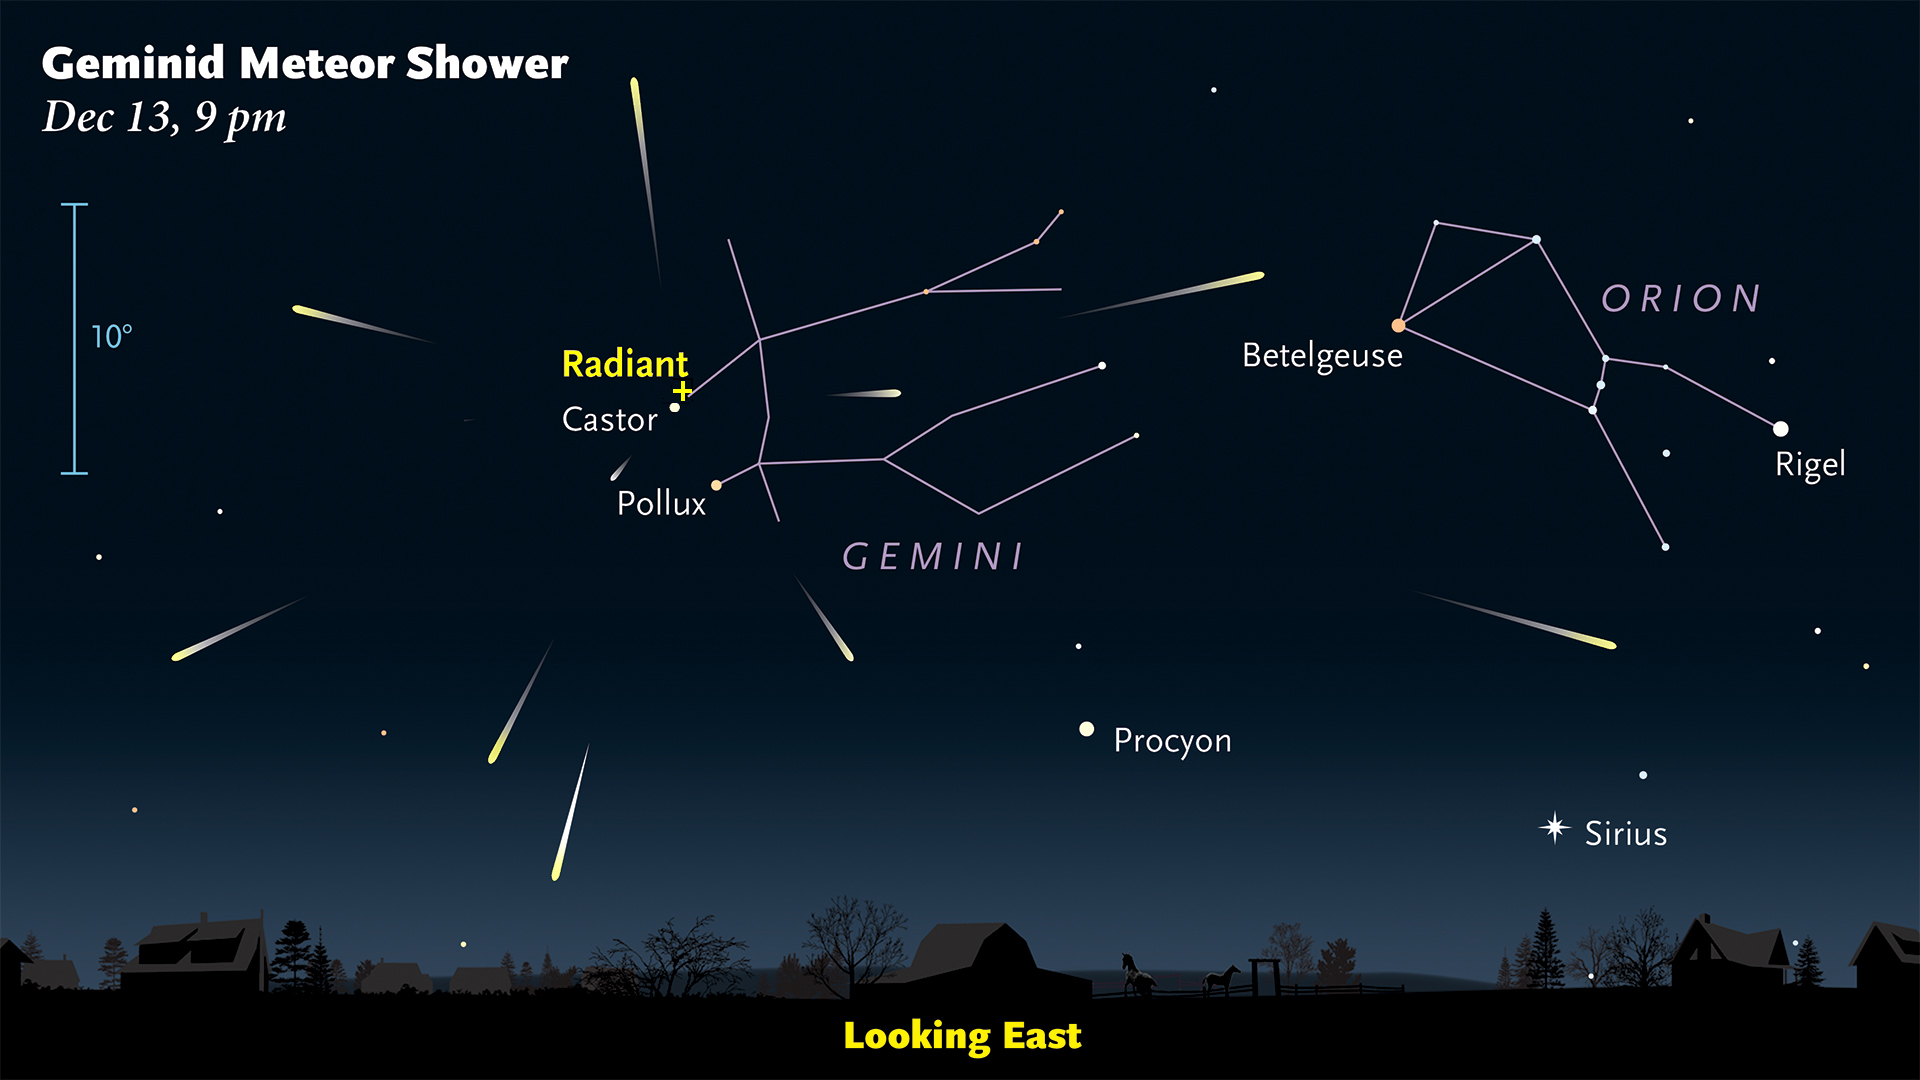 The Geminid radiant around 9 p.m.